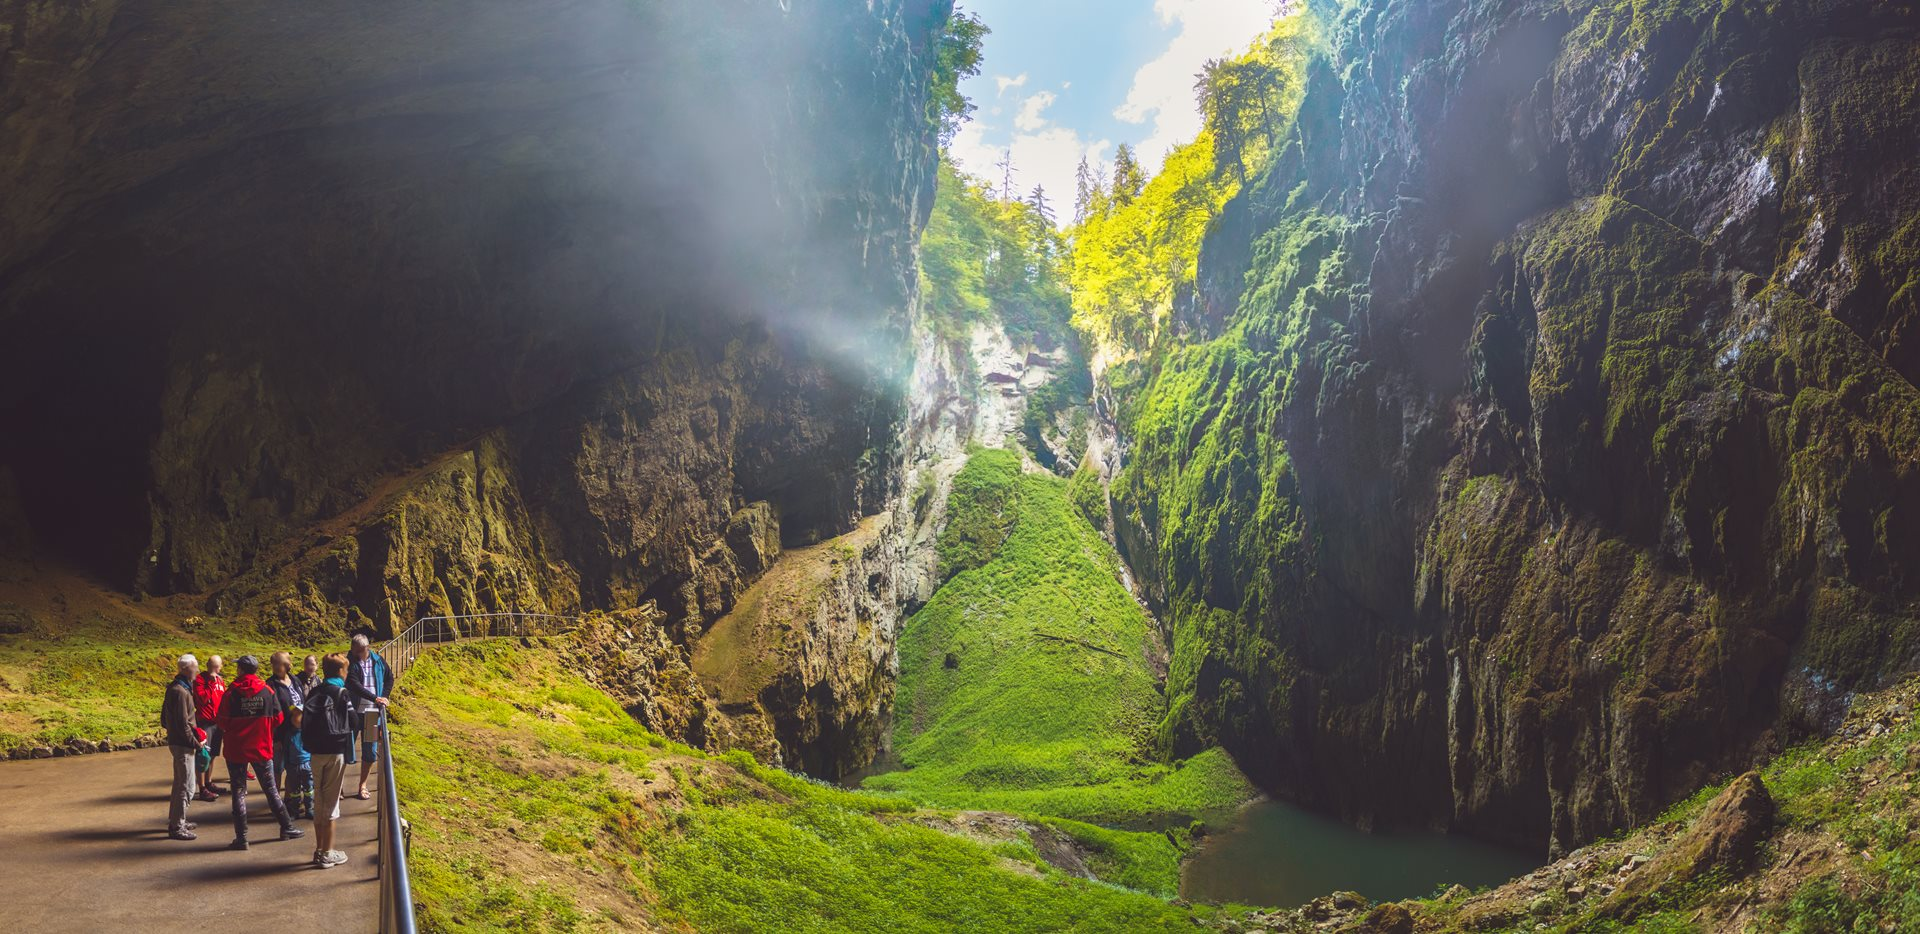 Discovering Punkva Caves and Macocha Abyss in Moravia, Czech Republic